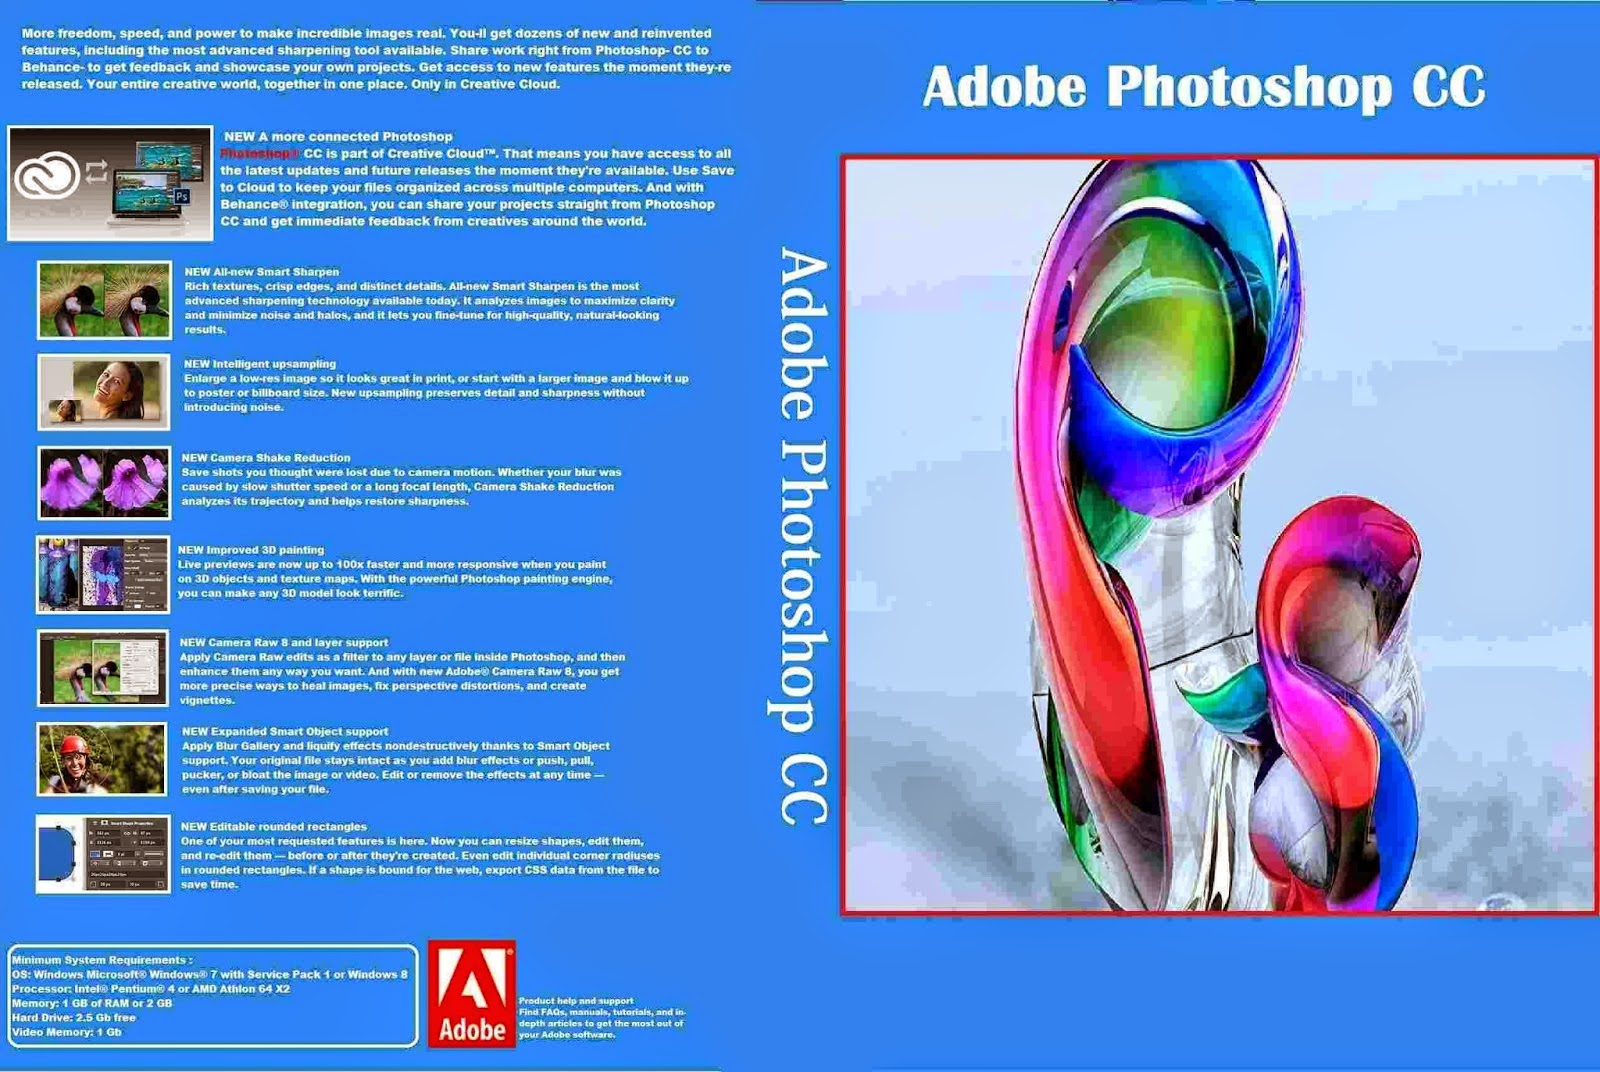 Download Adobe Photoshop CC 2014 15.1 x64 & x86 PT-BR Adobe Photoshop CC   Capa PC Software